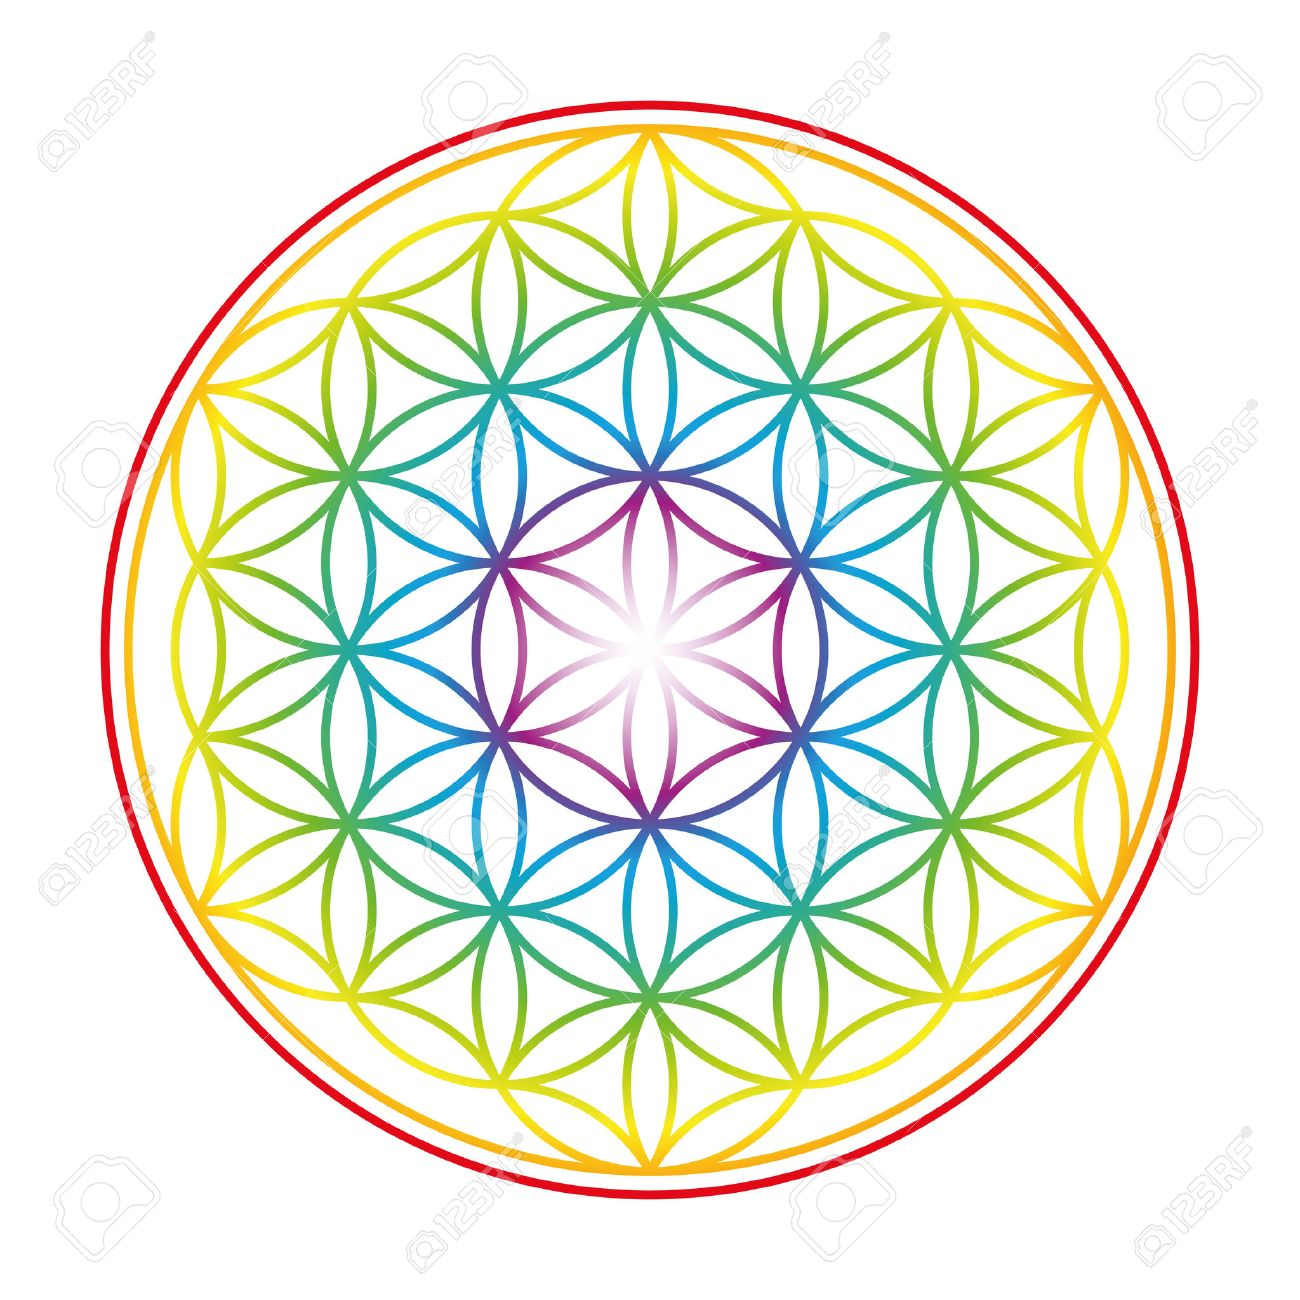 Flower of Life shown as an gently glowing rainbow colored symbol of harmony. Isolated illustration on white background. Banque d'images - 43294384